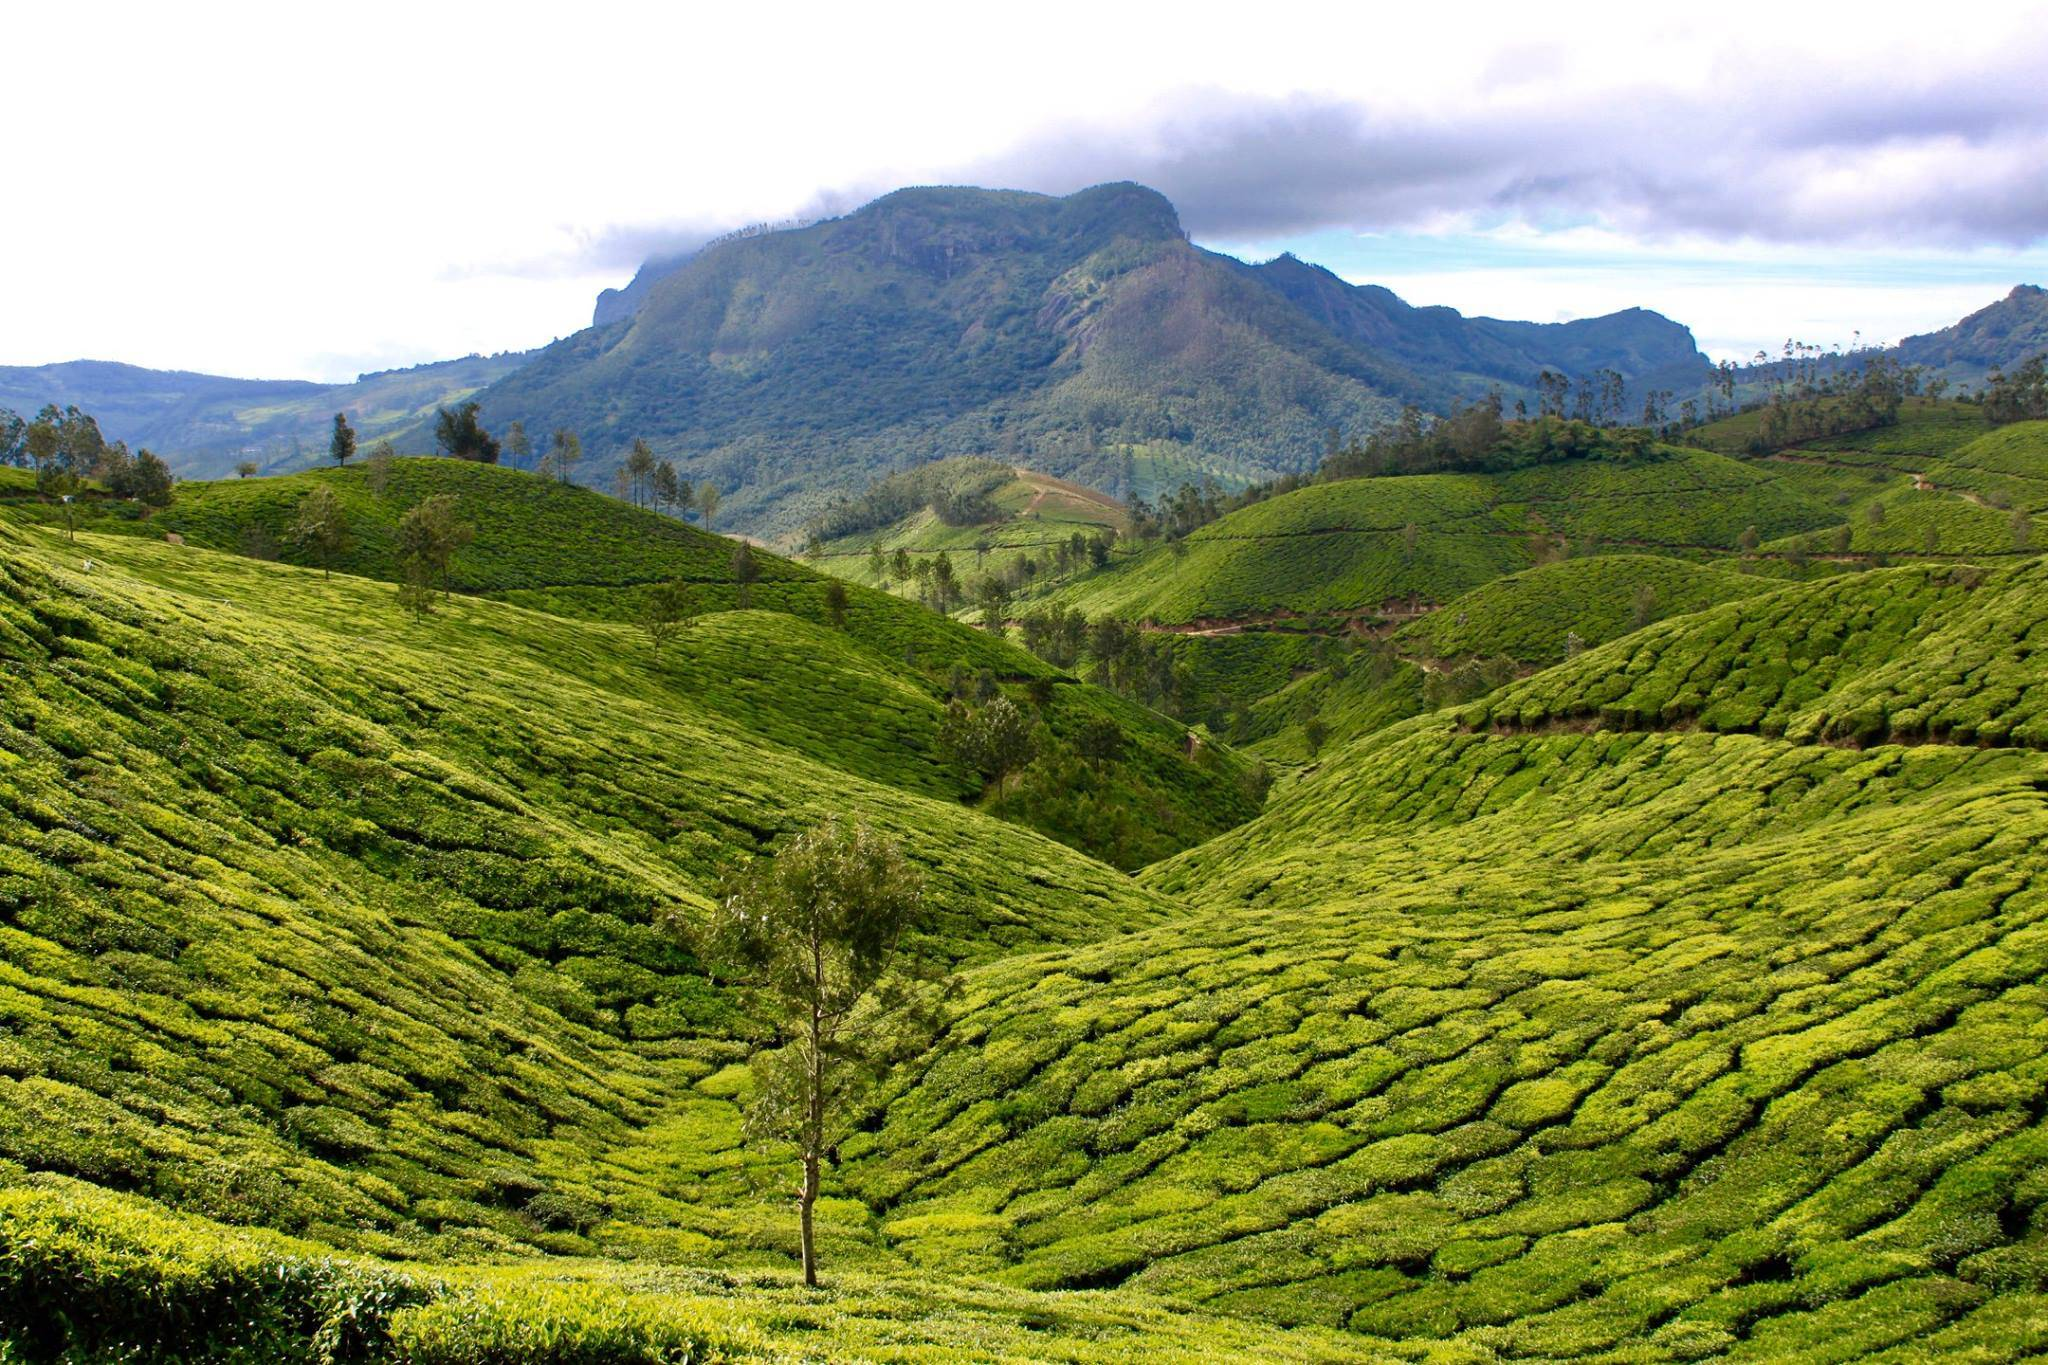 Photo 1: Plantations de thé à Munnar